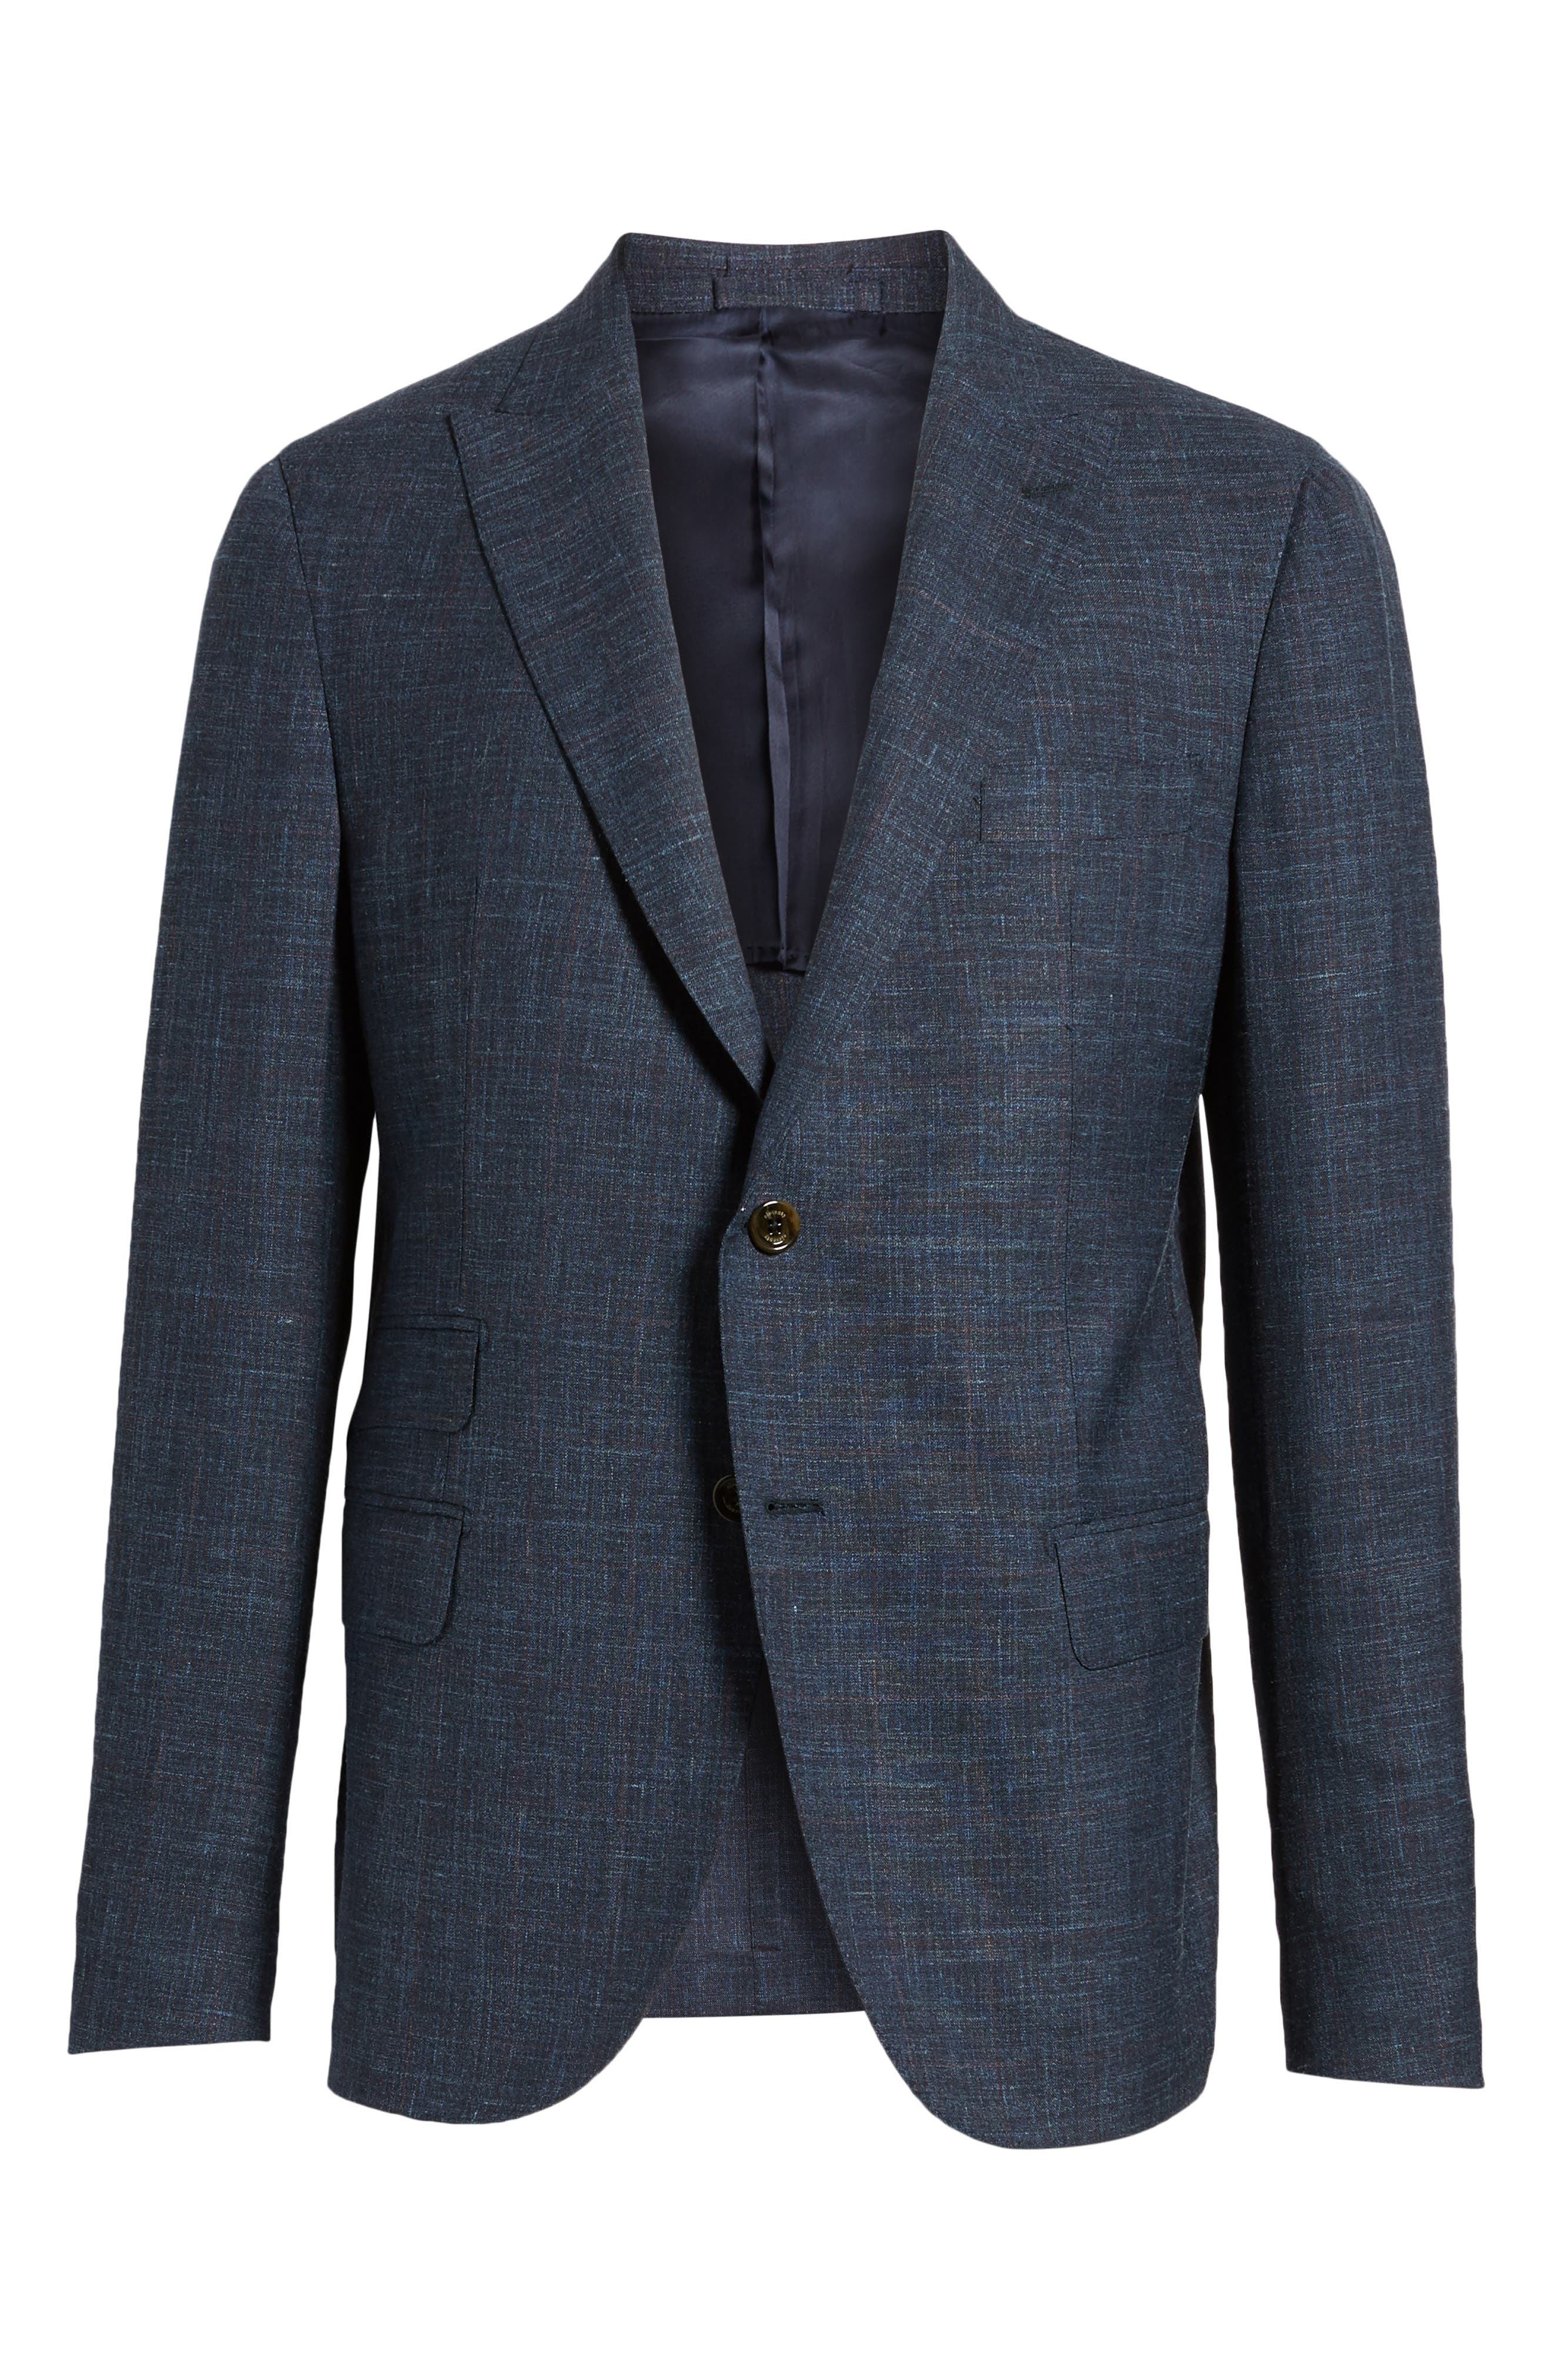 Trim Fit Wool Blend Blazer,                             Alternate thumbnail 6, color,                             Denim Blue